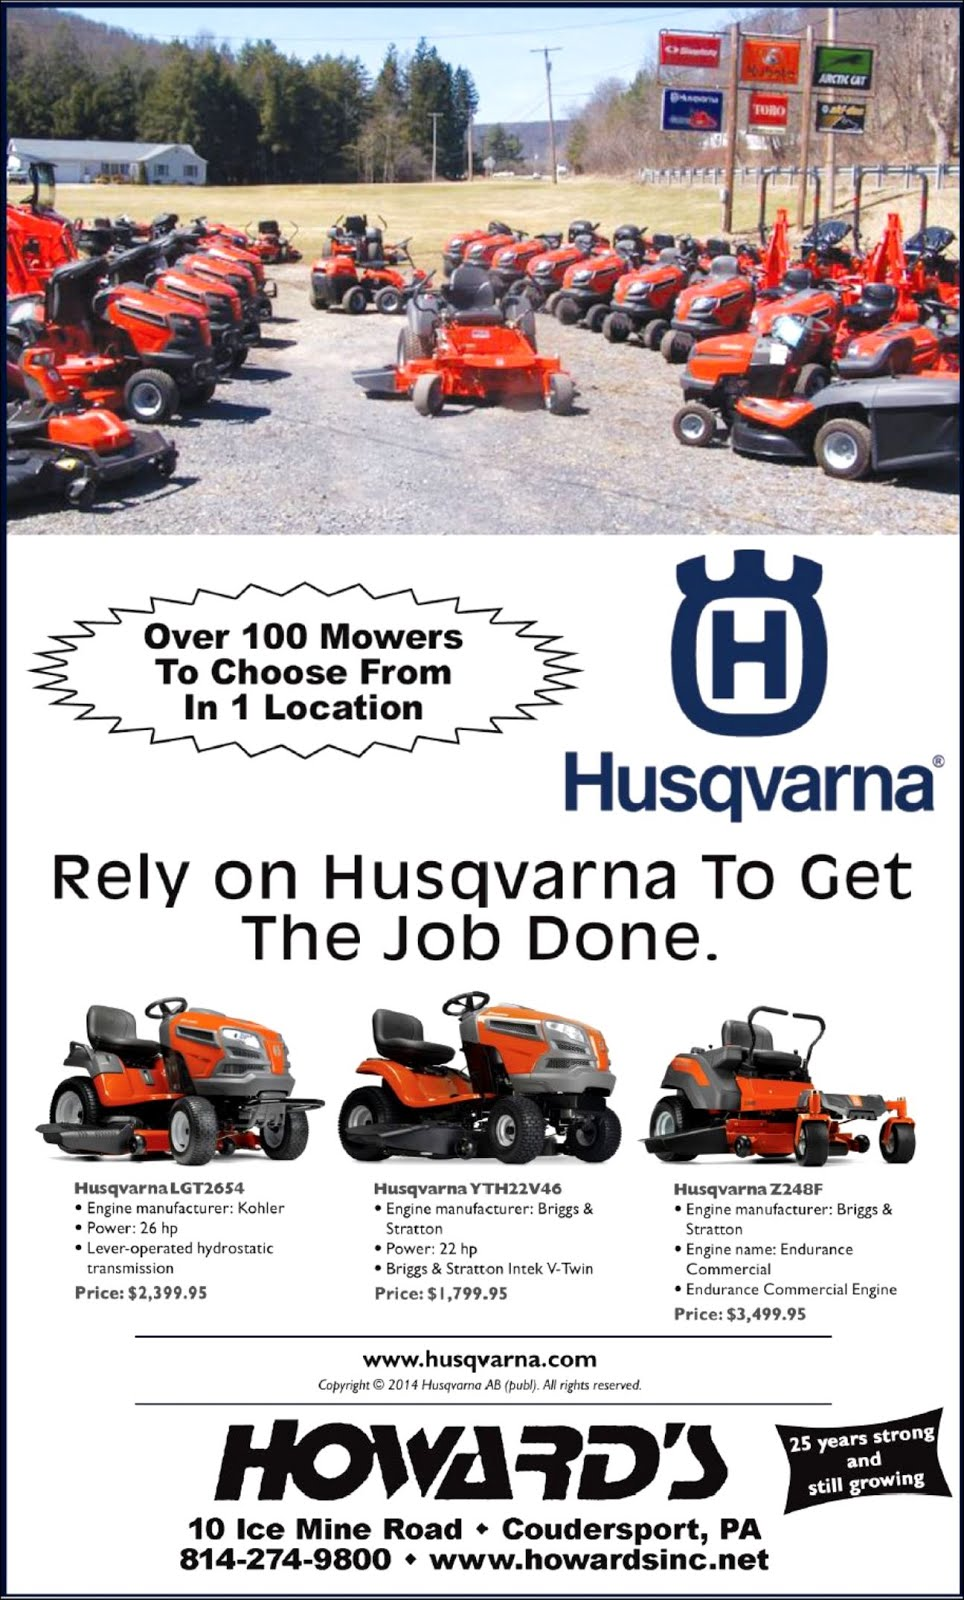 Howard's Husqvarna